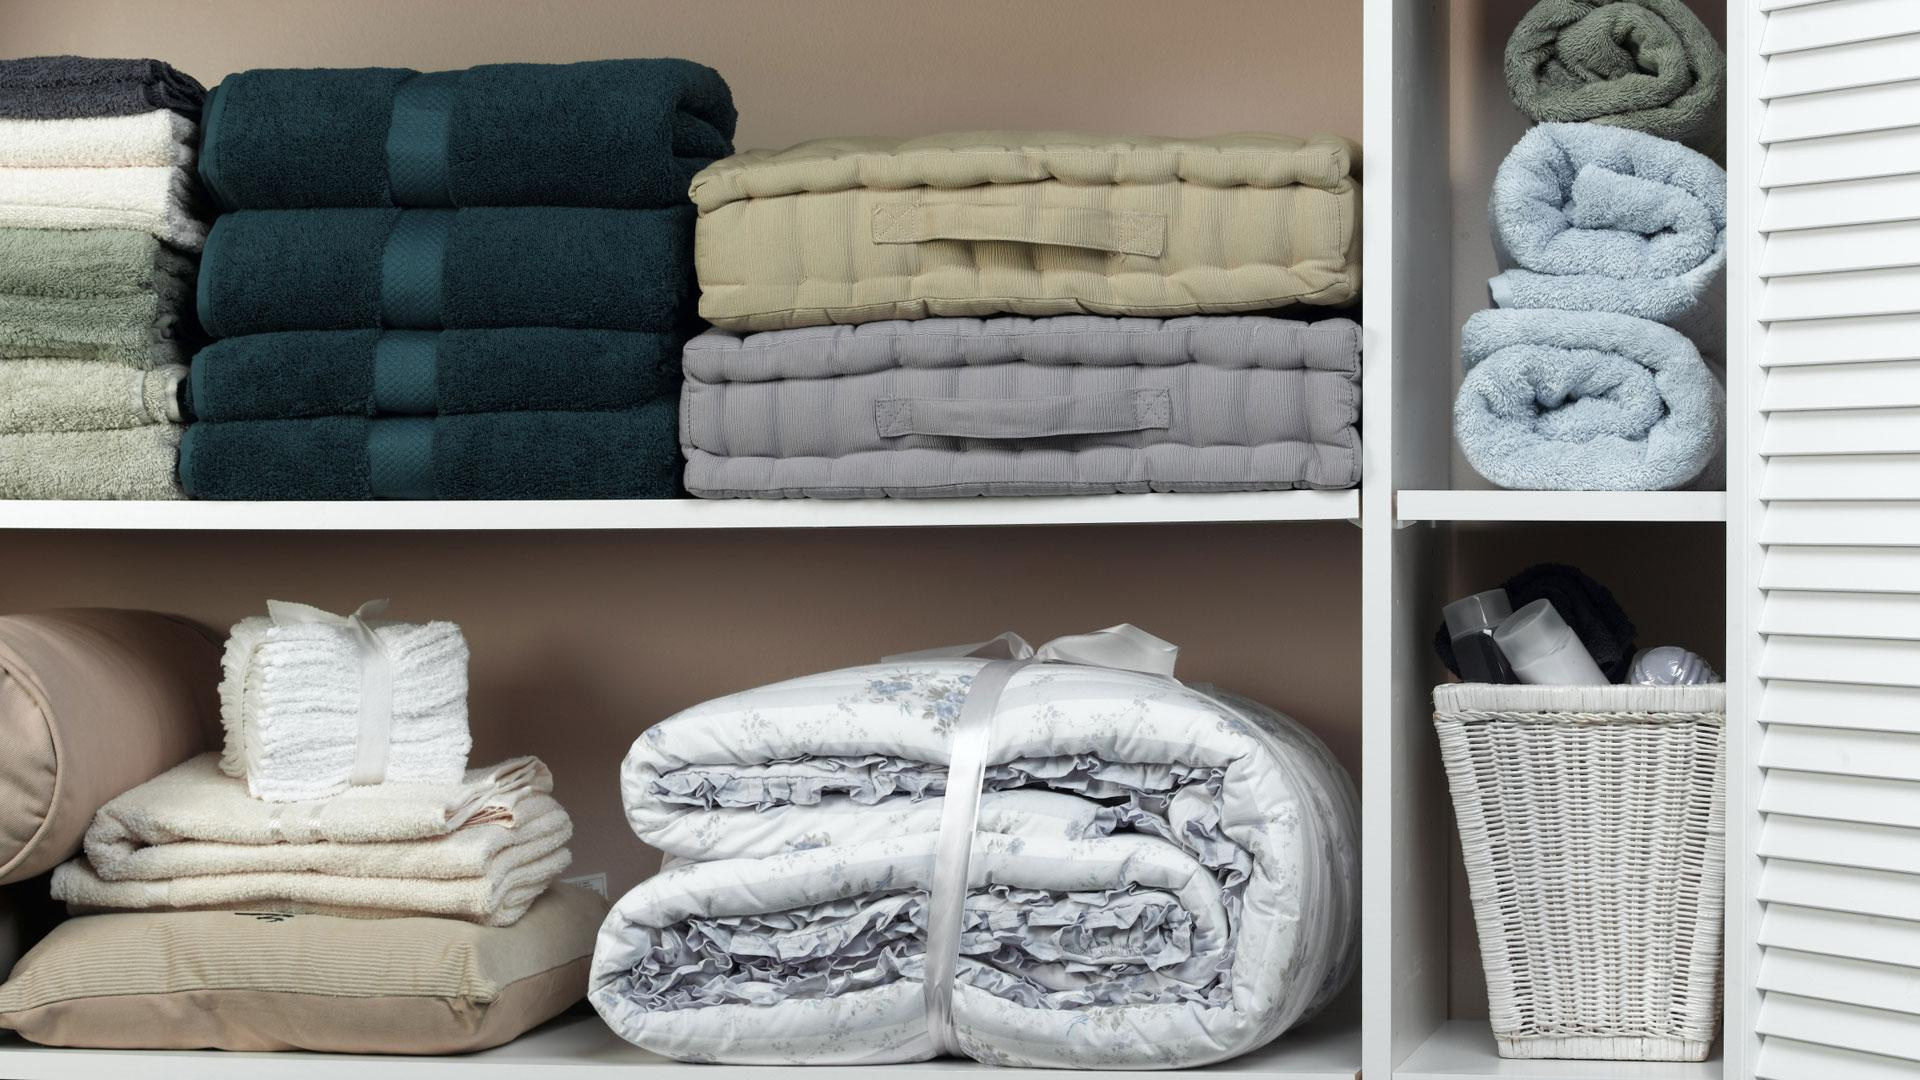 Top 10 closet organizers from West Elm